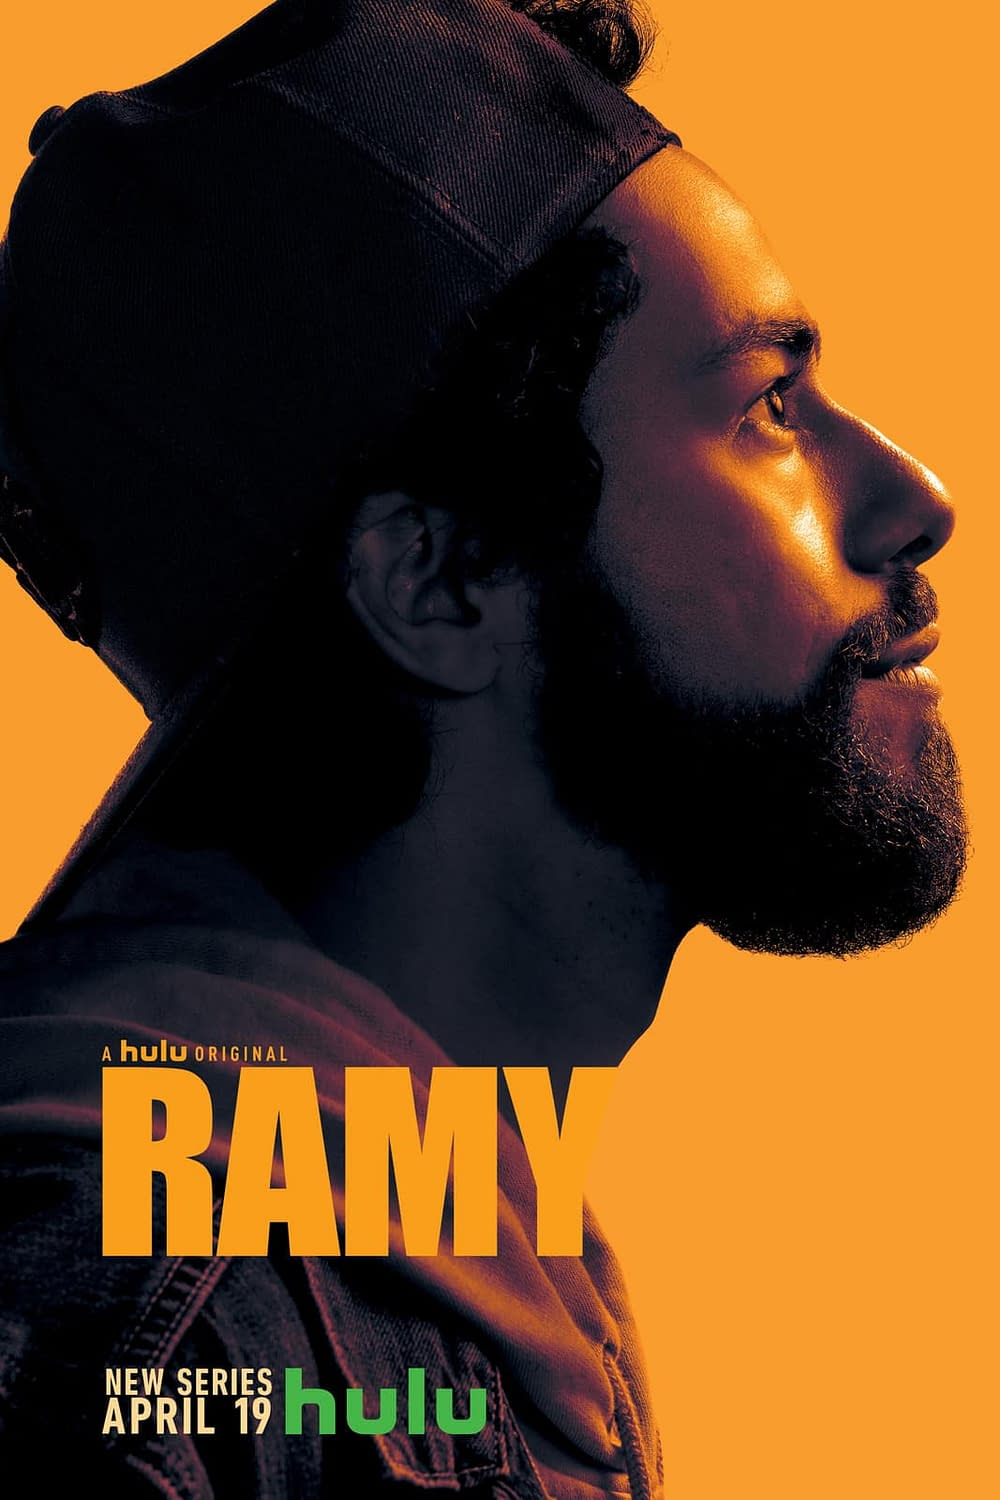 [SXSW 2019] 'Ramy': Hulu Comedy Series Finds Ramy Youssef Just Trying to Be Good (TRAILER)